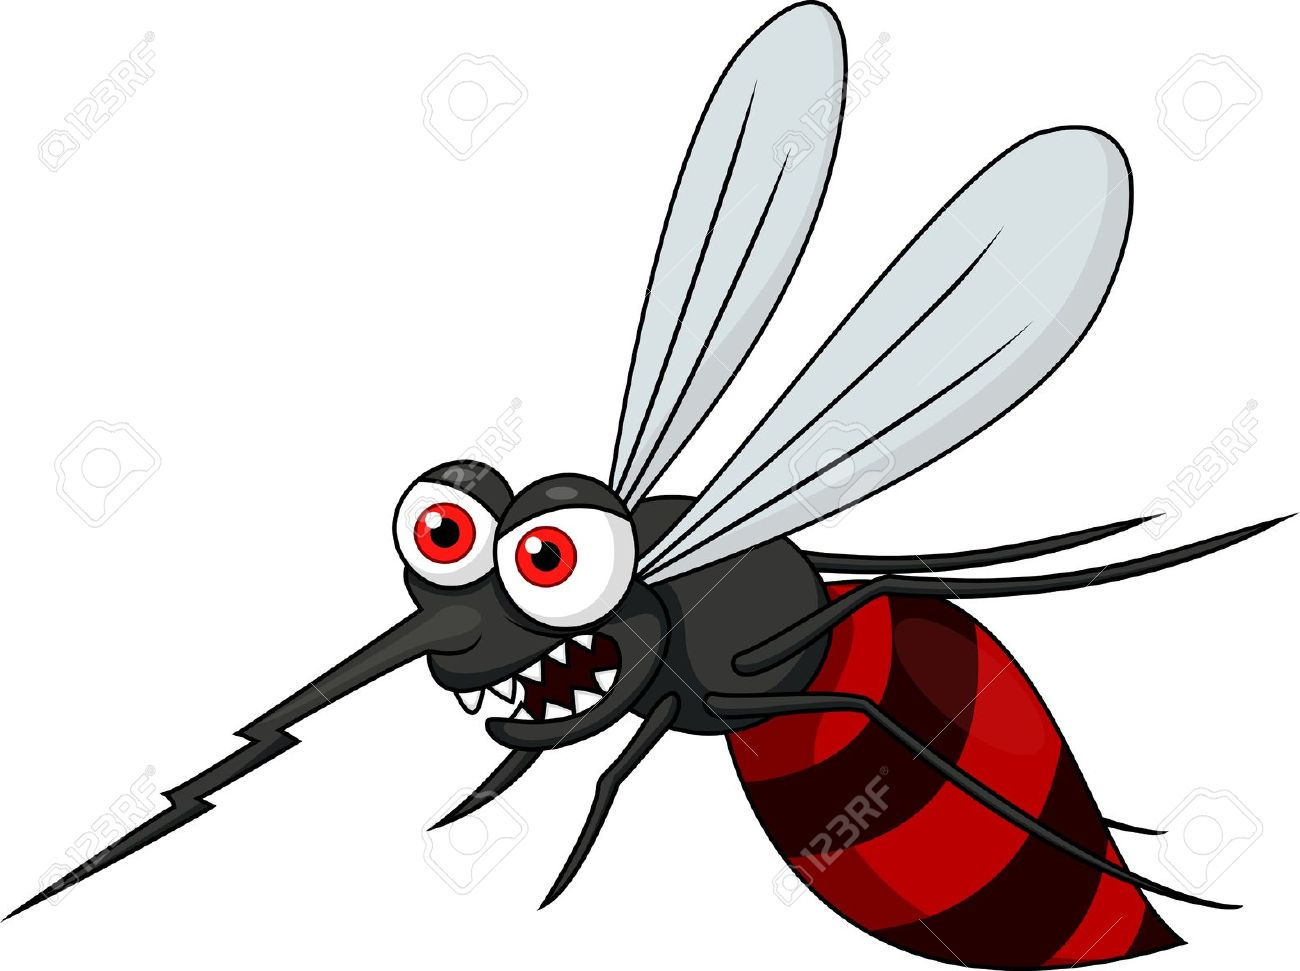 Mosquito clipart graphic royalty free download Best Mosquito Clipart #2796 - Clipartion.com graphic royalty free download